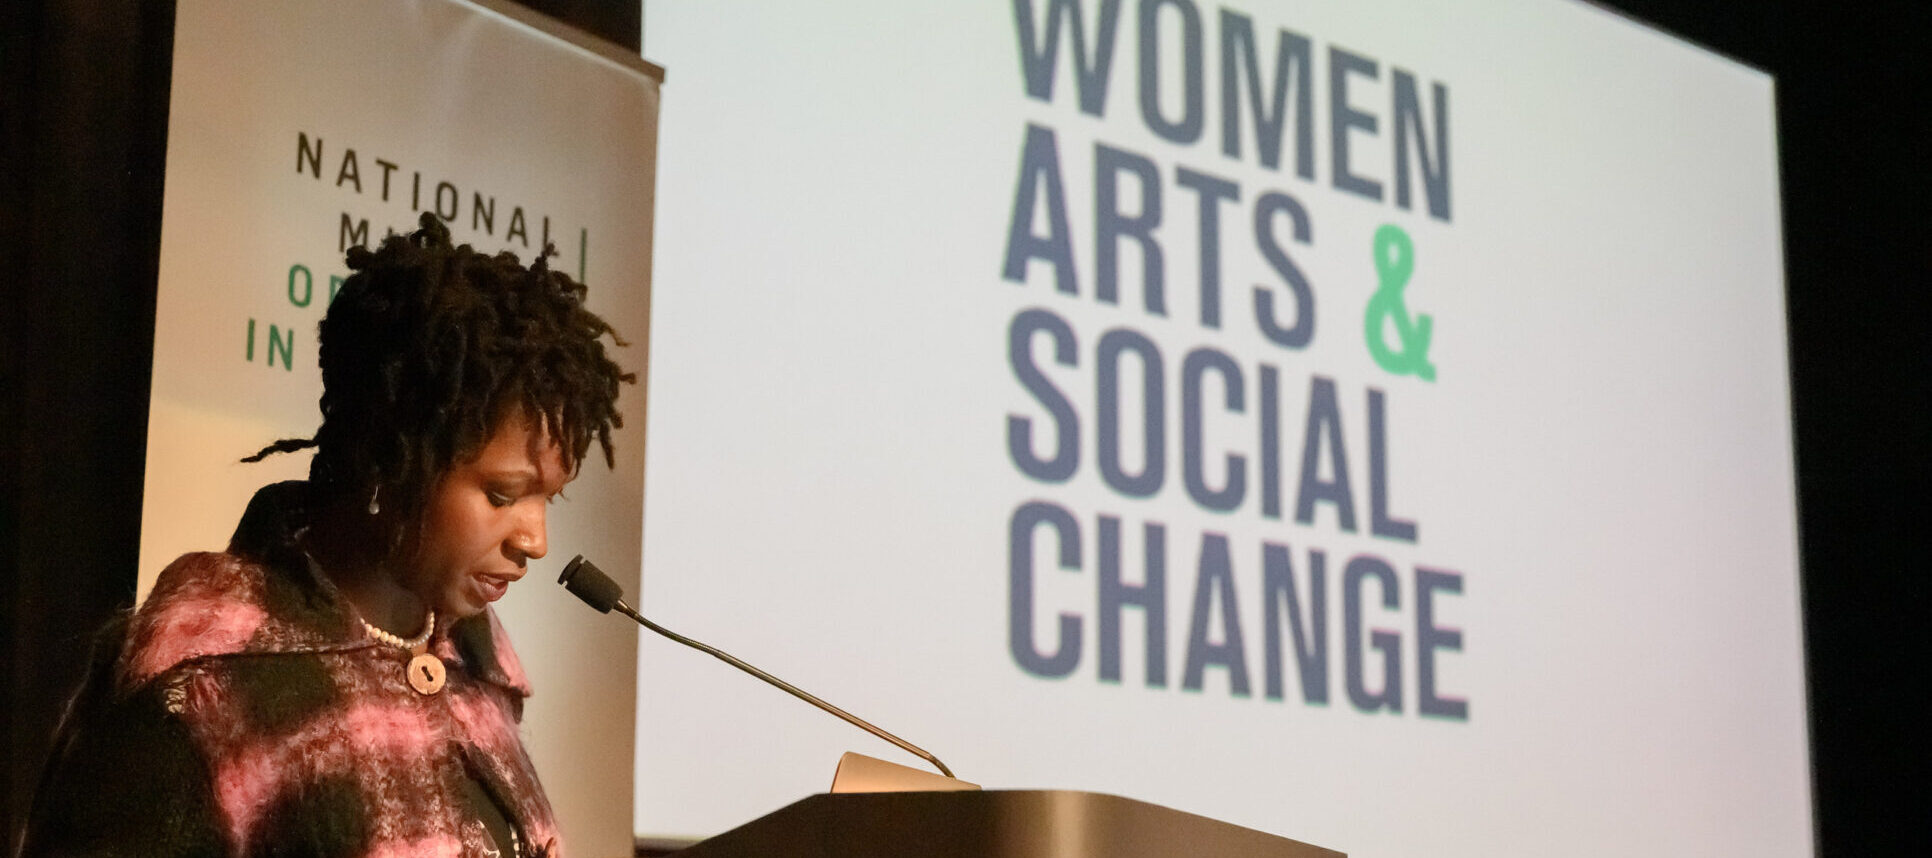 A dark-skinned adult woman stands at a podium at the National Museum of Women in the Arts to speak. She has short dreadlocks, jewelry, and a jacket with a large purple and black plaid print on it. Behind her is a screen with the words 'Women, Arts, & Social Change.'